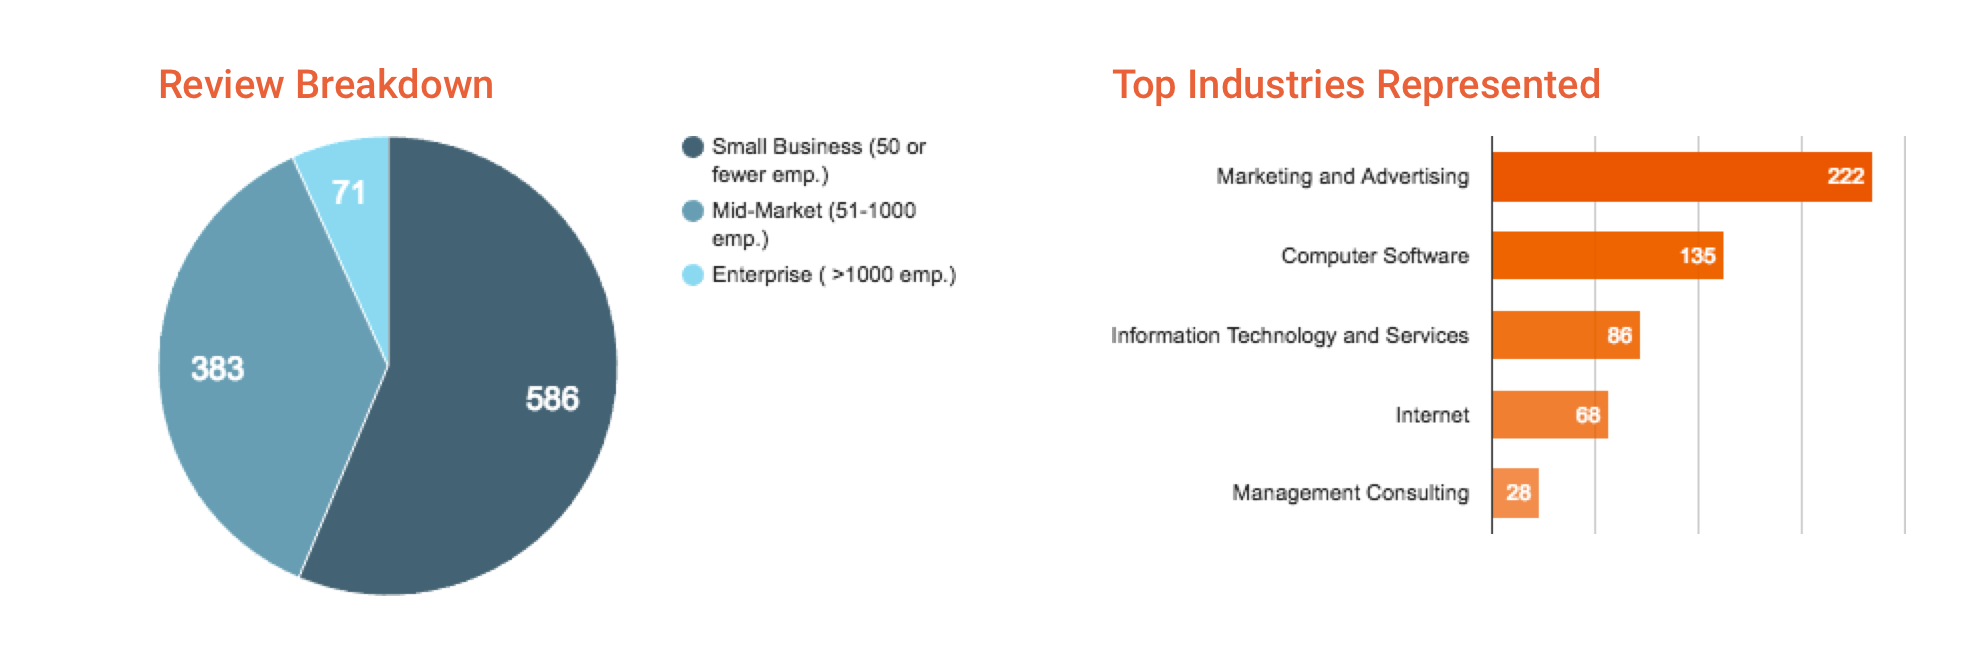 Report Preview Image